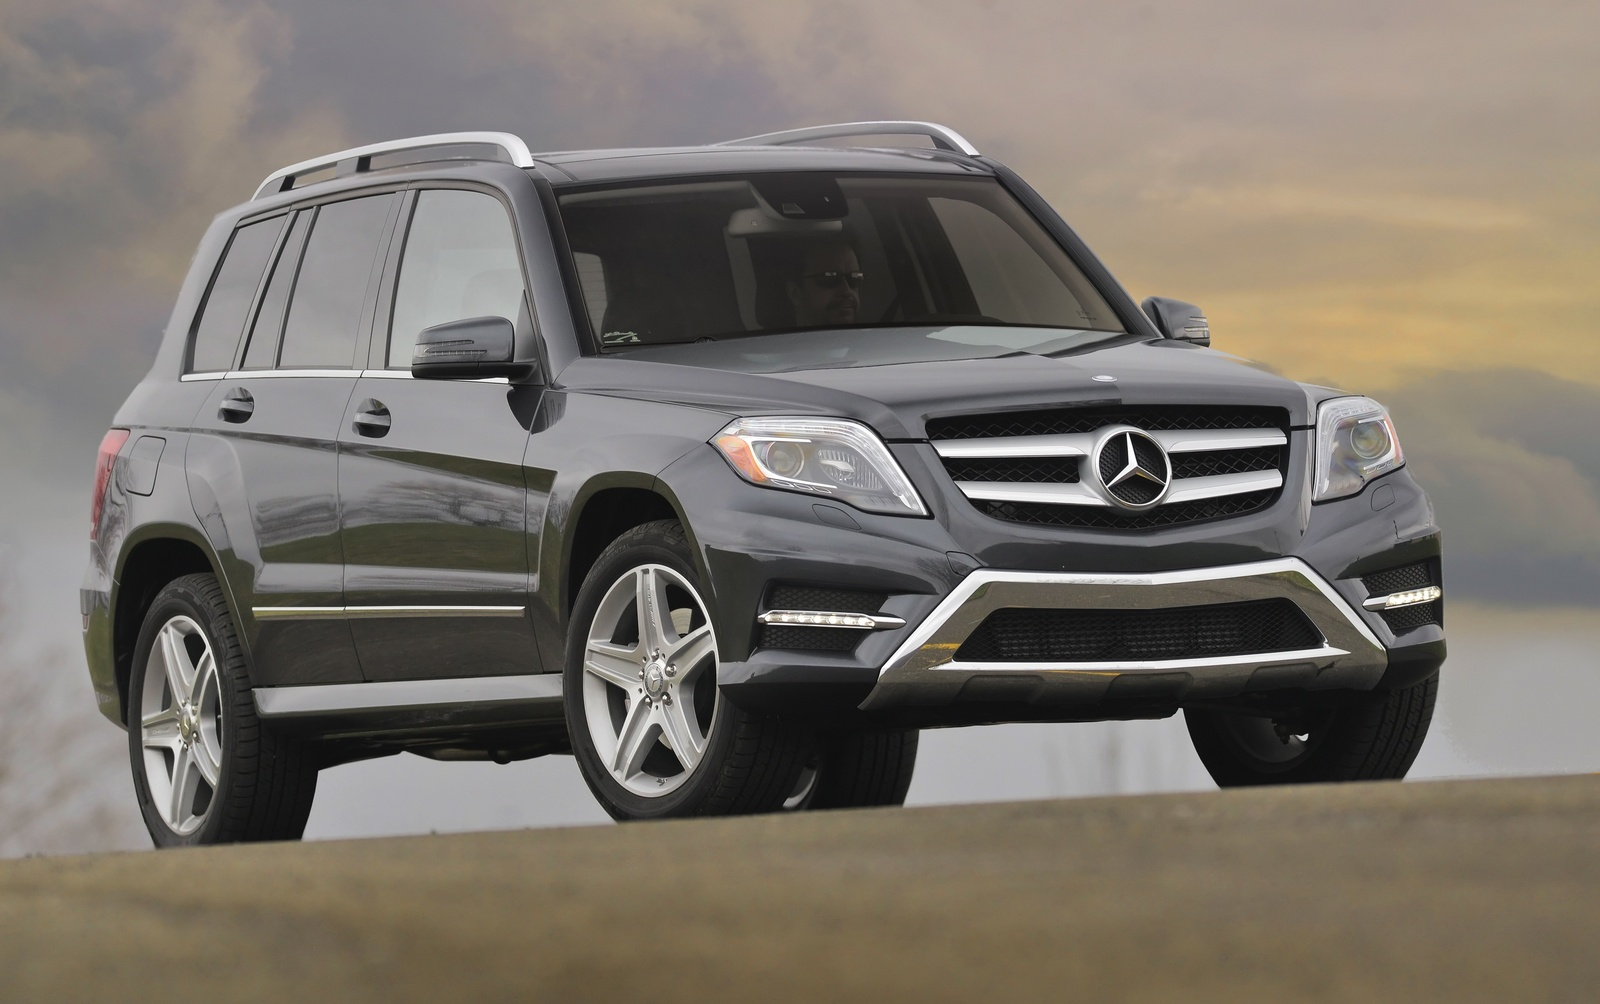 2015 mercedes benz glk class information and photos zombiedrive. Black Bedroom Furniture Sets. Home Design Ideas